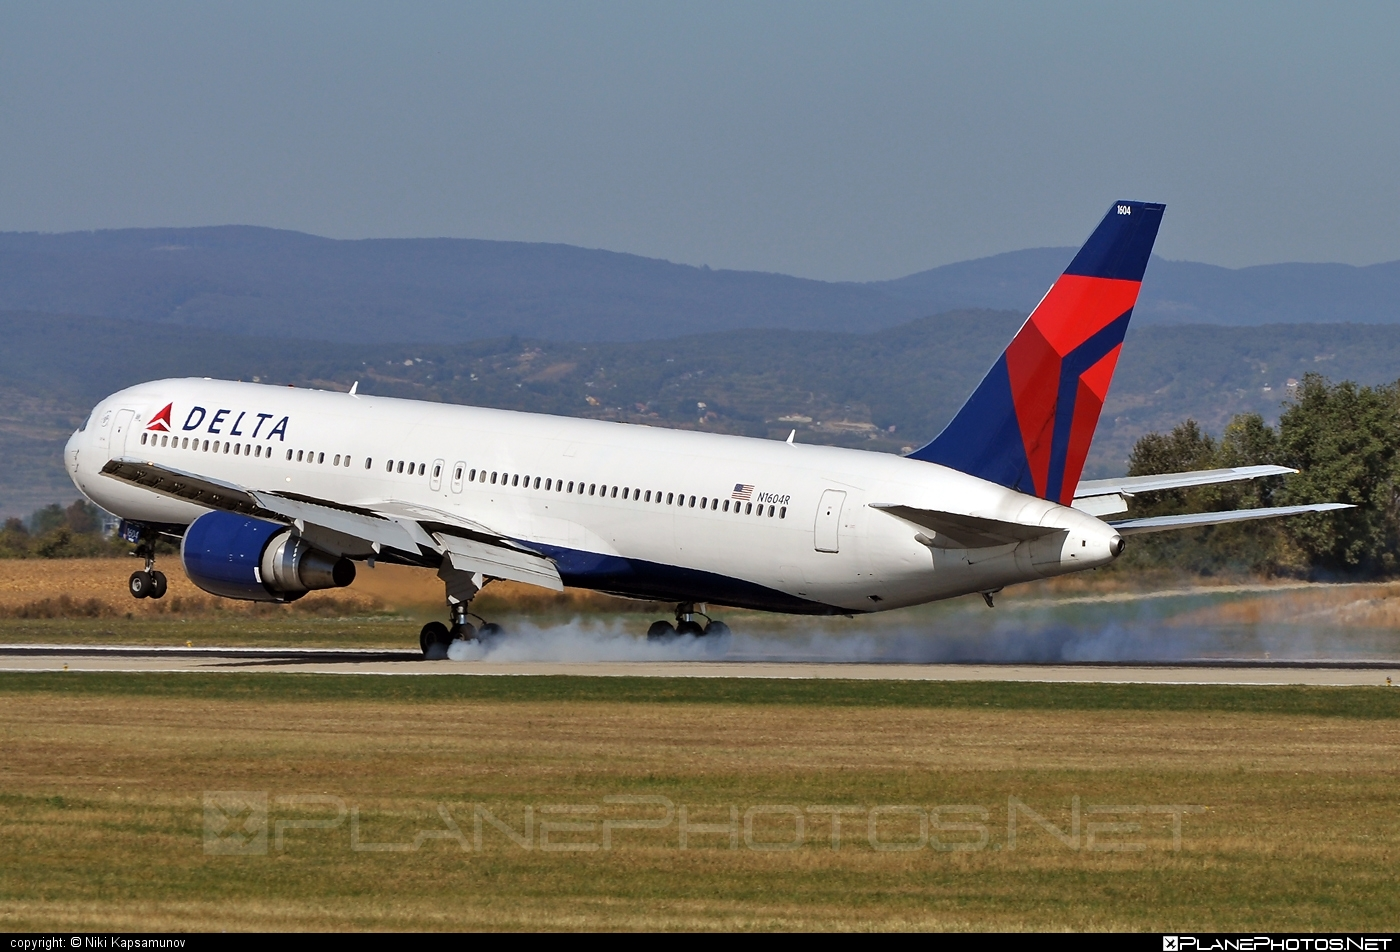 Boeing 767-300ER - N1604R operated by Delta Air Lines #b767 #b767er #boeing #boeing767 #deltaairlines